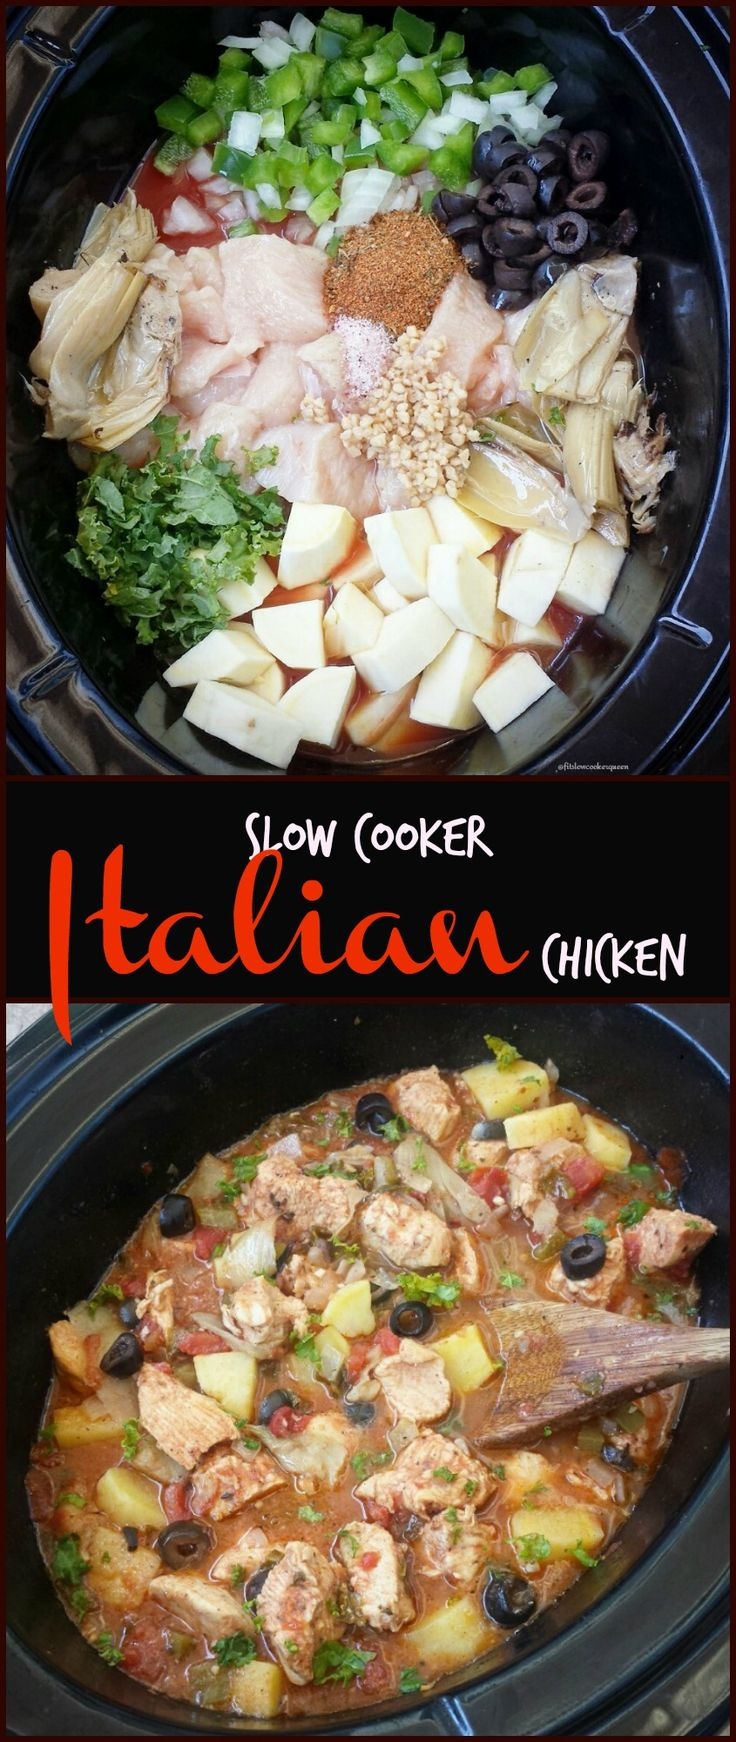 Crockpot / Slow Cooker healthy whole30 paleo - Throw your favorite Italian ingredients in the slow cooker with your favorite cut of chicken for this easy and healthy slow cooker recipe.